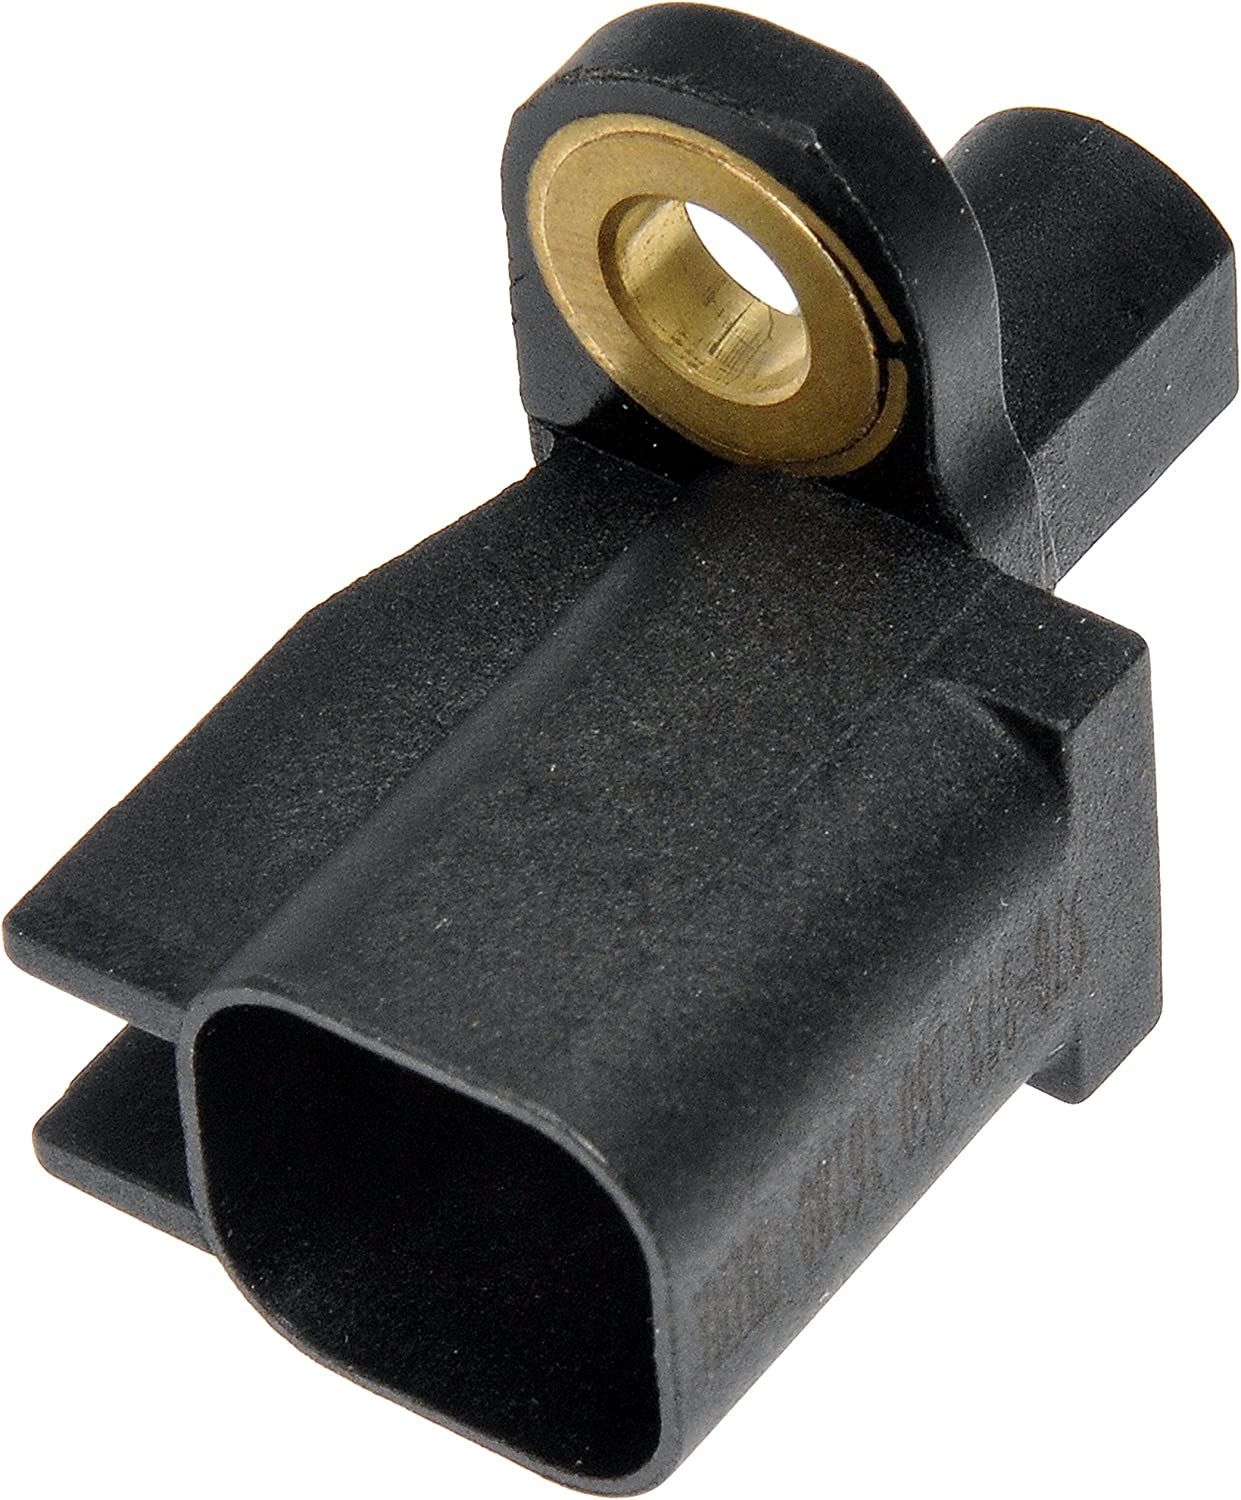 1 Pack Dorman 970-373 ABS Wheel Speed Sensor